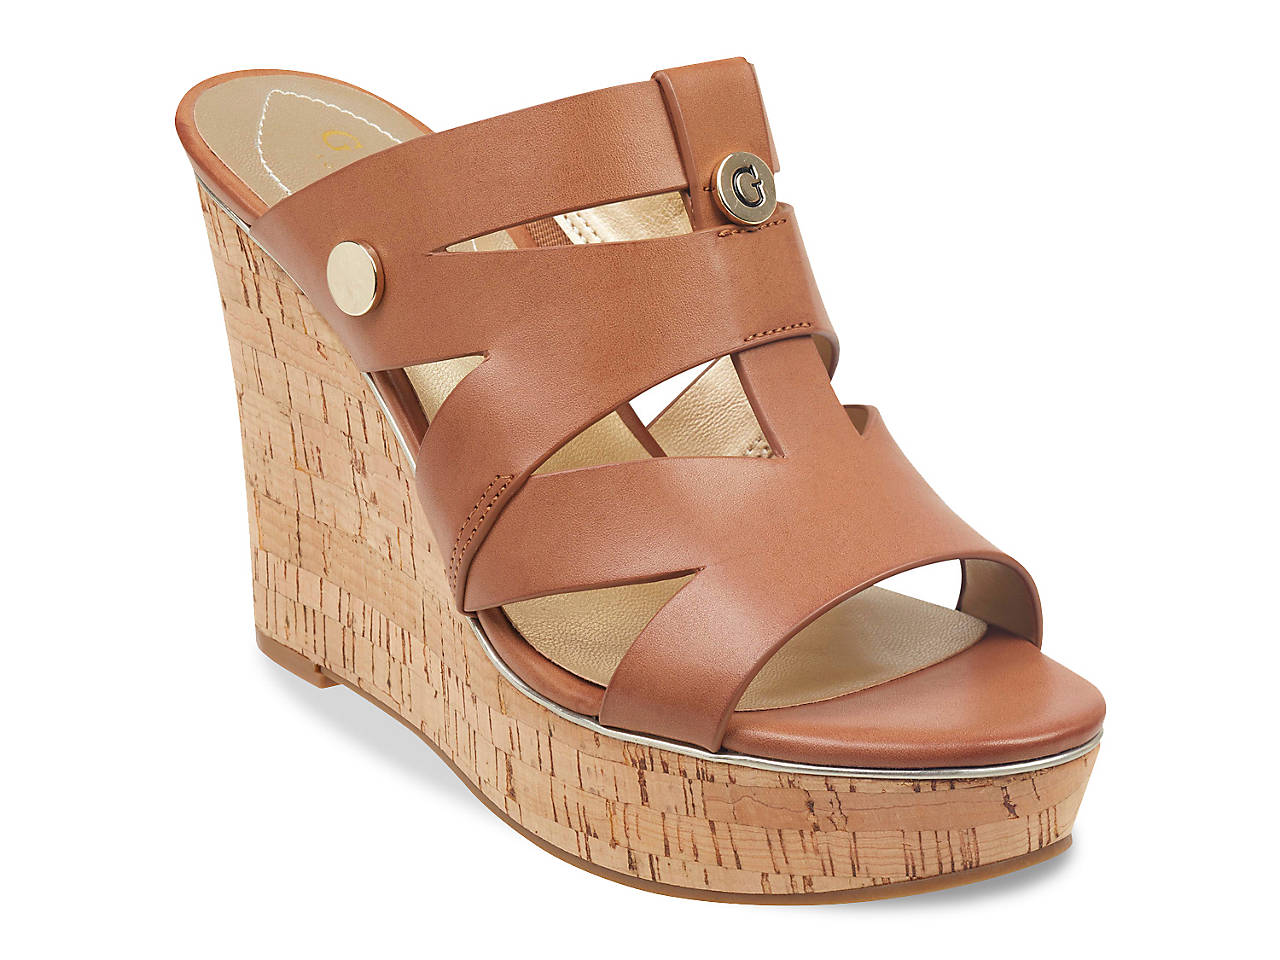 a63b17657 Guess Nextoo Wedge Sandal Women's Shoes | DSW